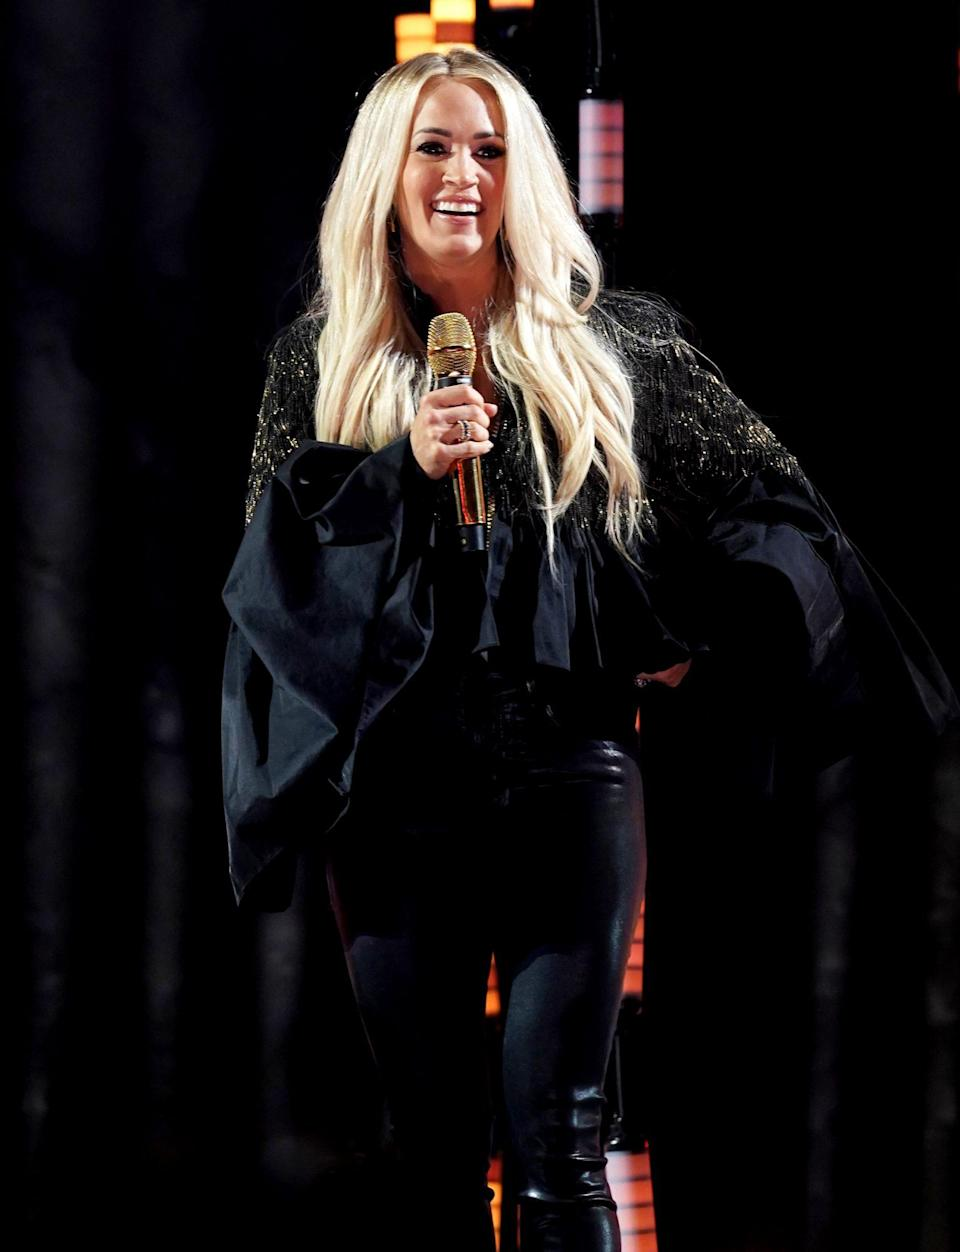 <p>Carrie Underwood rehearses for the 2021 Latin American Music Awards at the BB&T Center on Wednesday in Sunrise, Florida.</p>